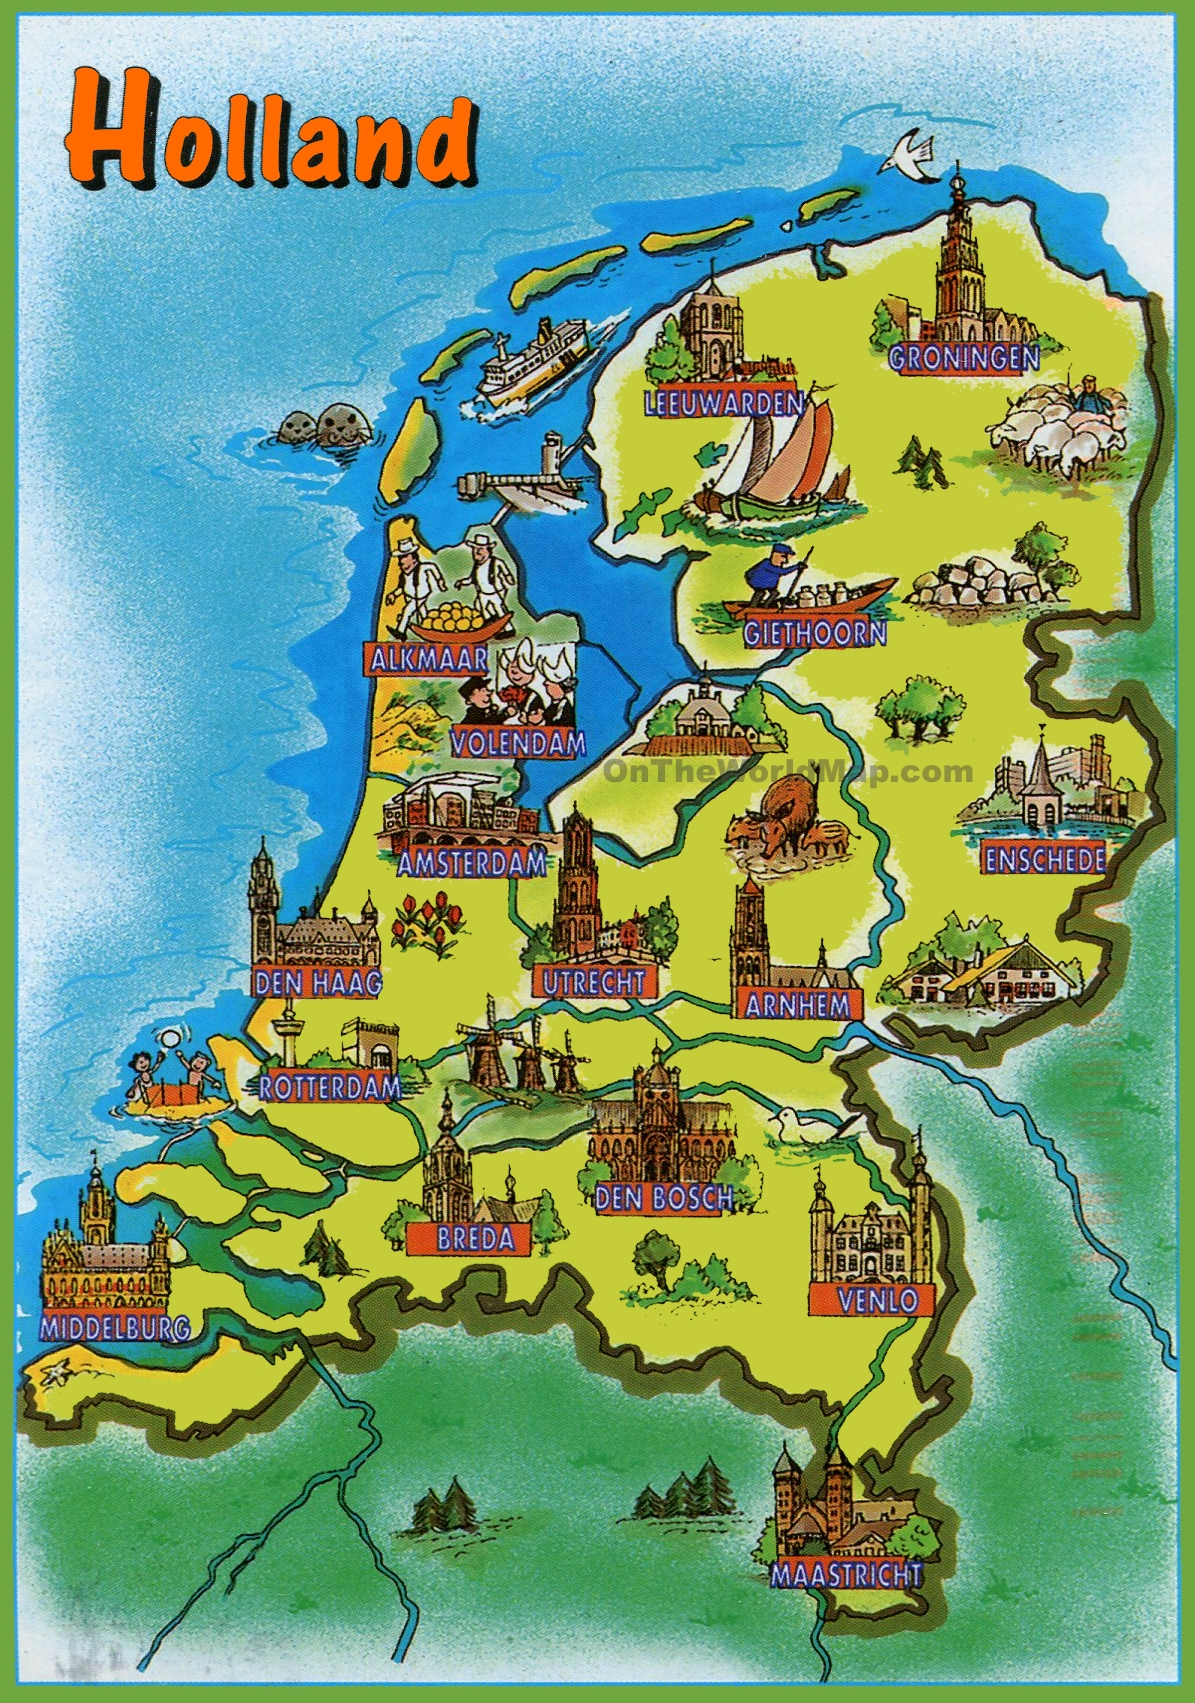 Pictorial travel map of Netherlands